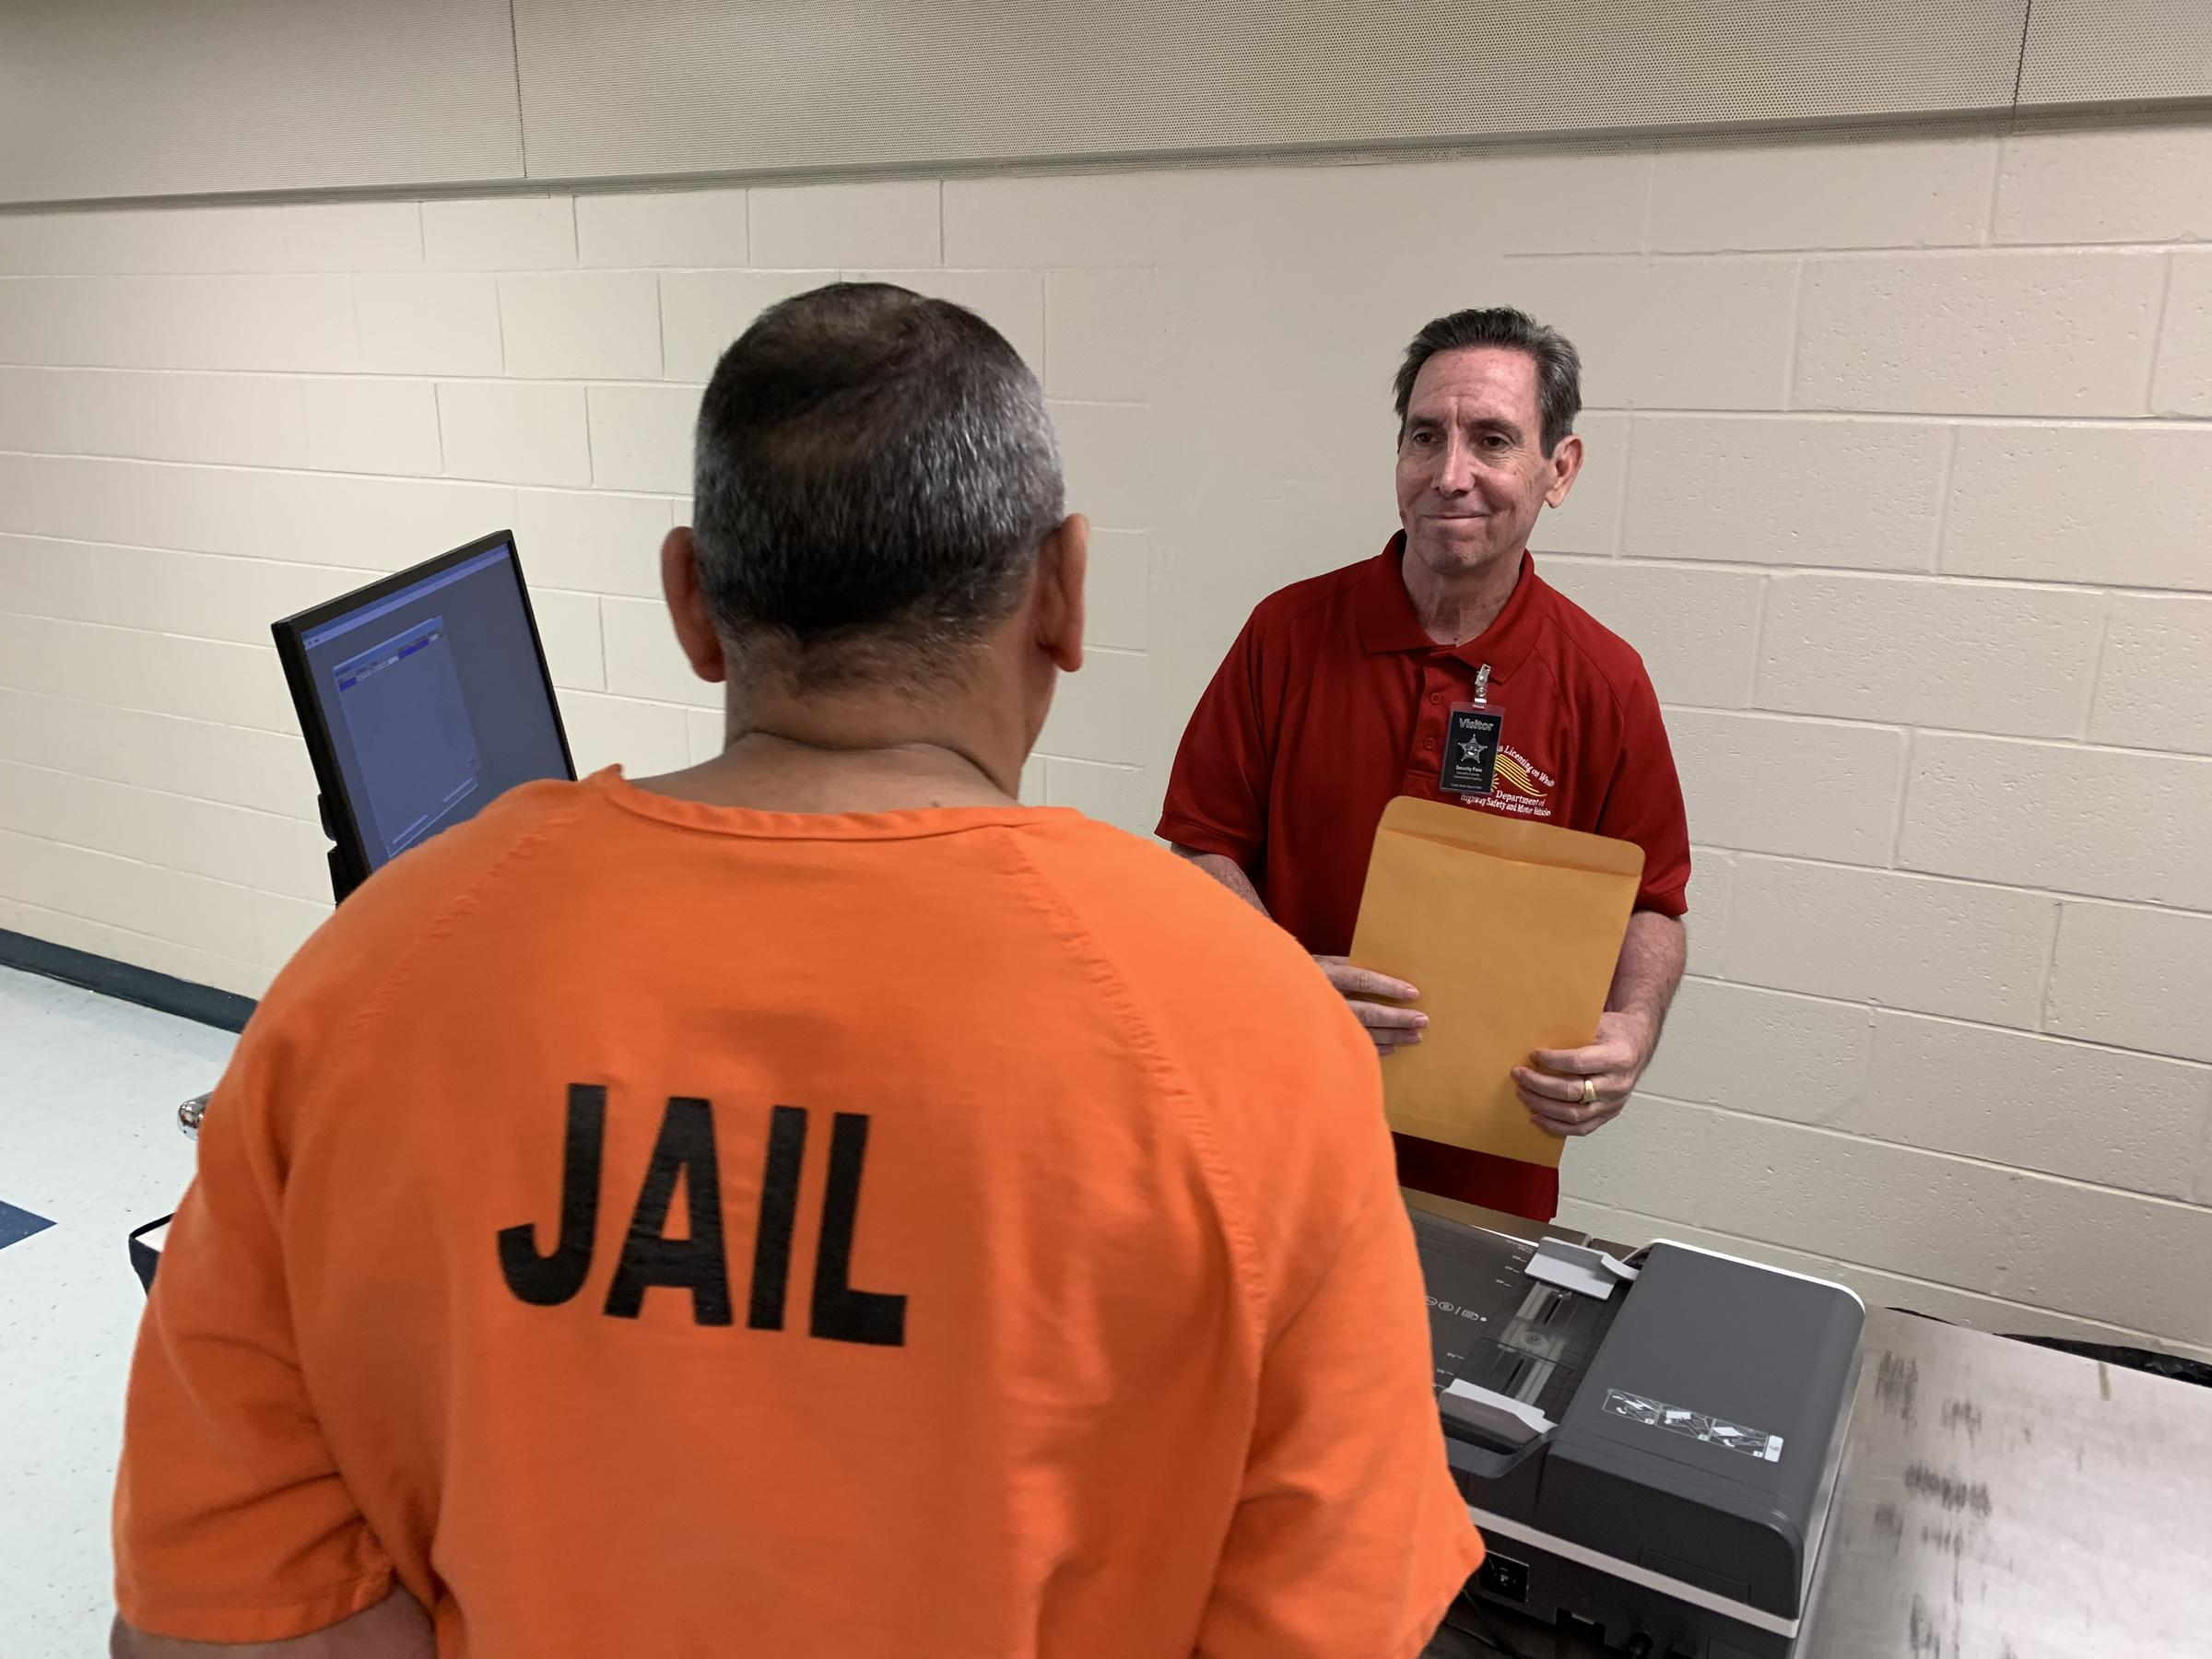 Sarasota Jail Hopes Handing Out IDs Will Boost Ex-Inmates